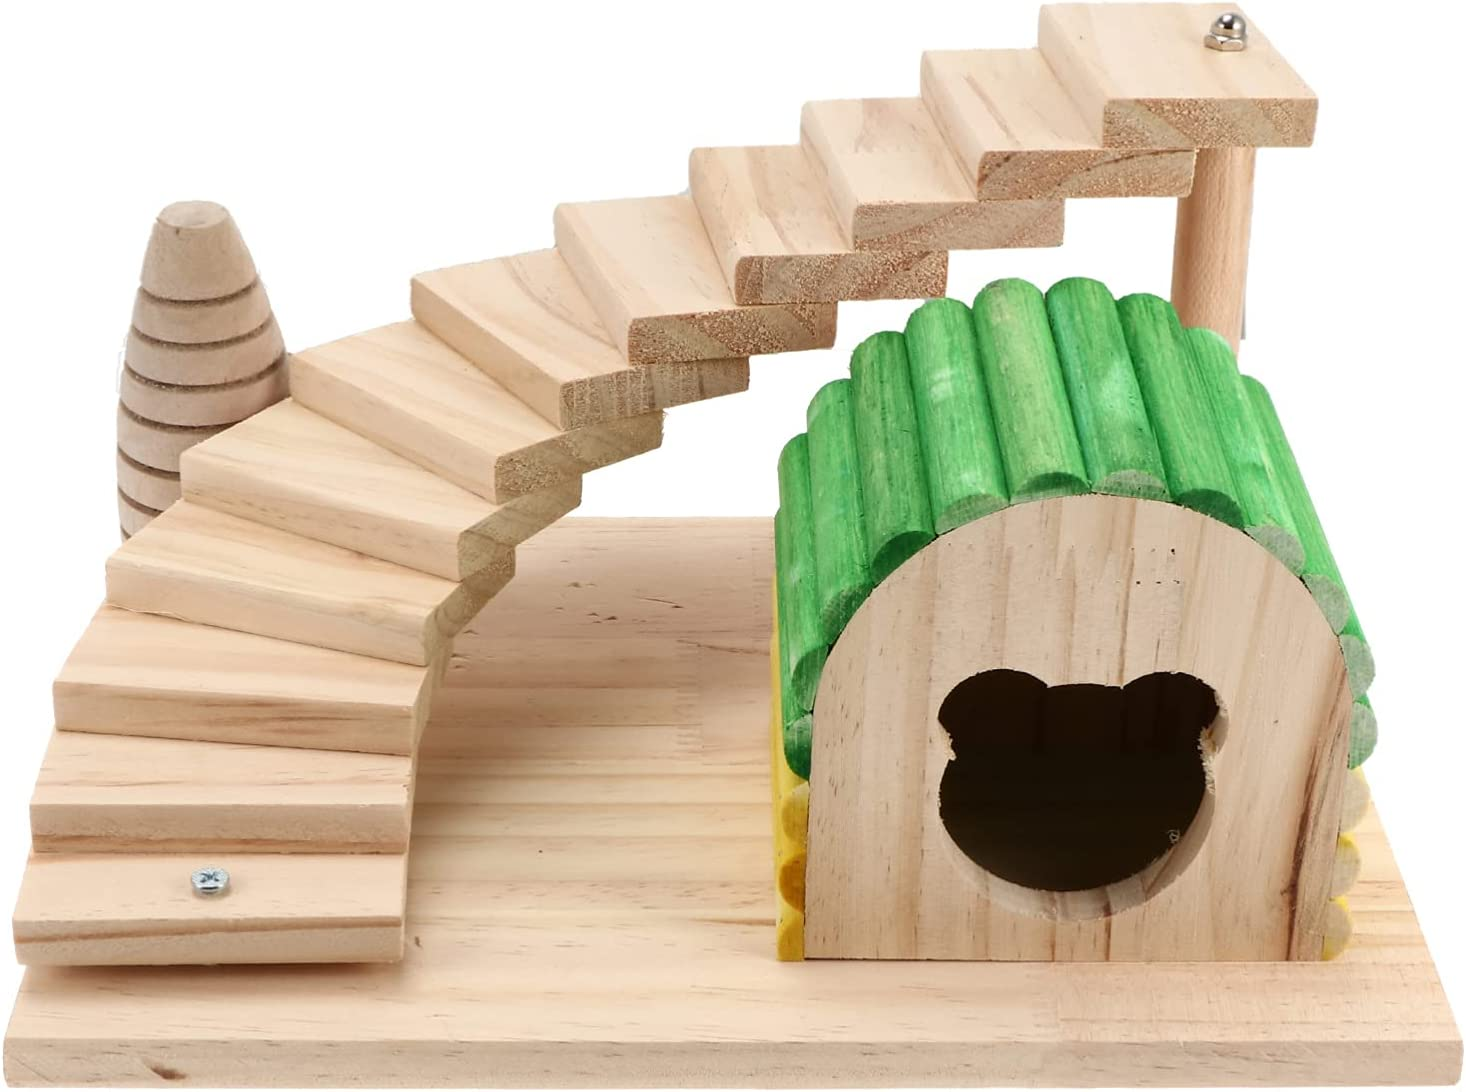 Balacoo Over item handling Guinea Pig Cash special price Hideout Small wi Hideaway Animal House Wooden